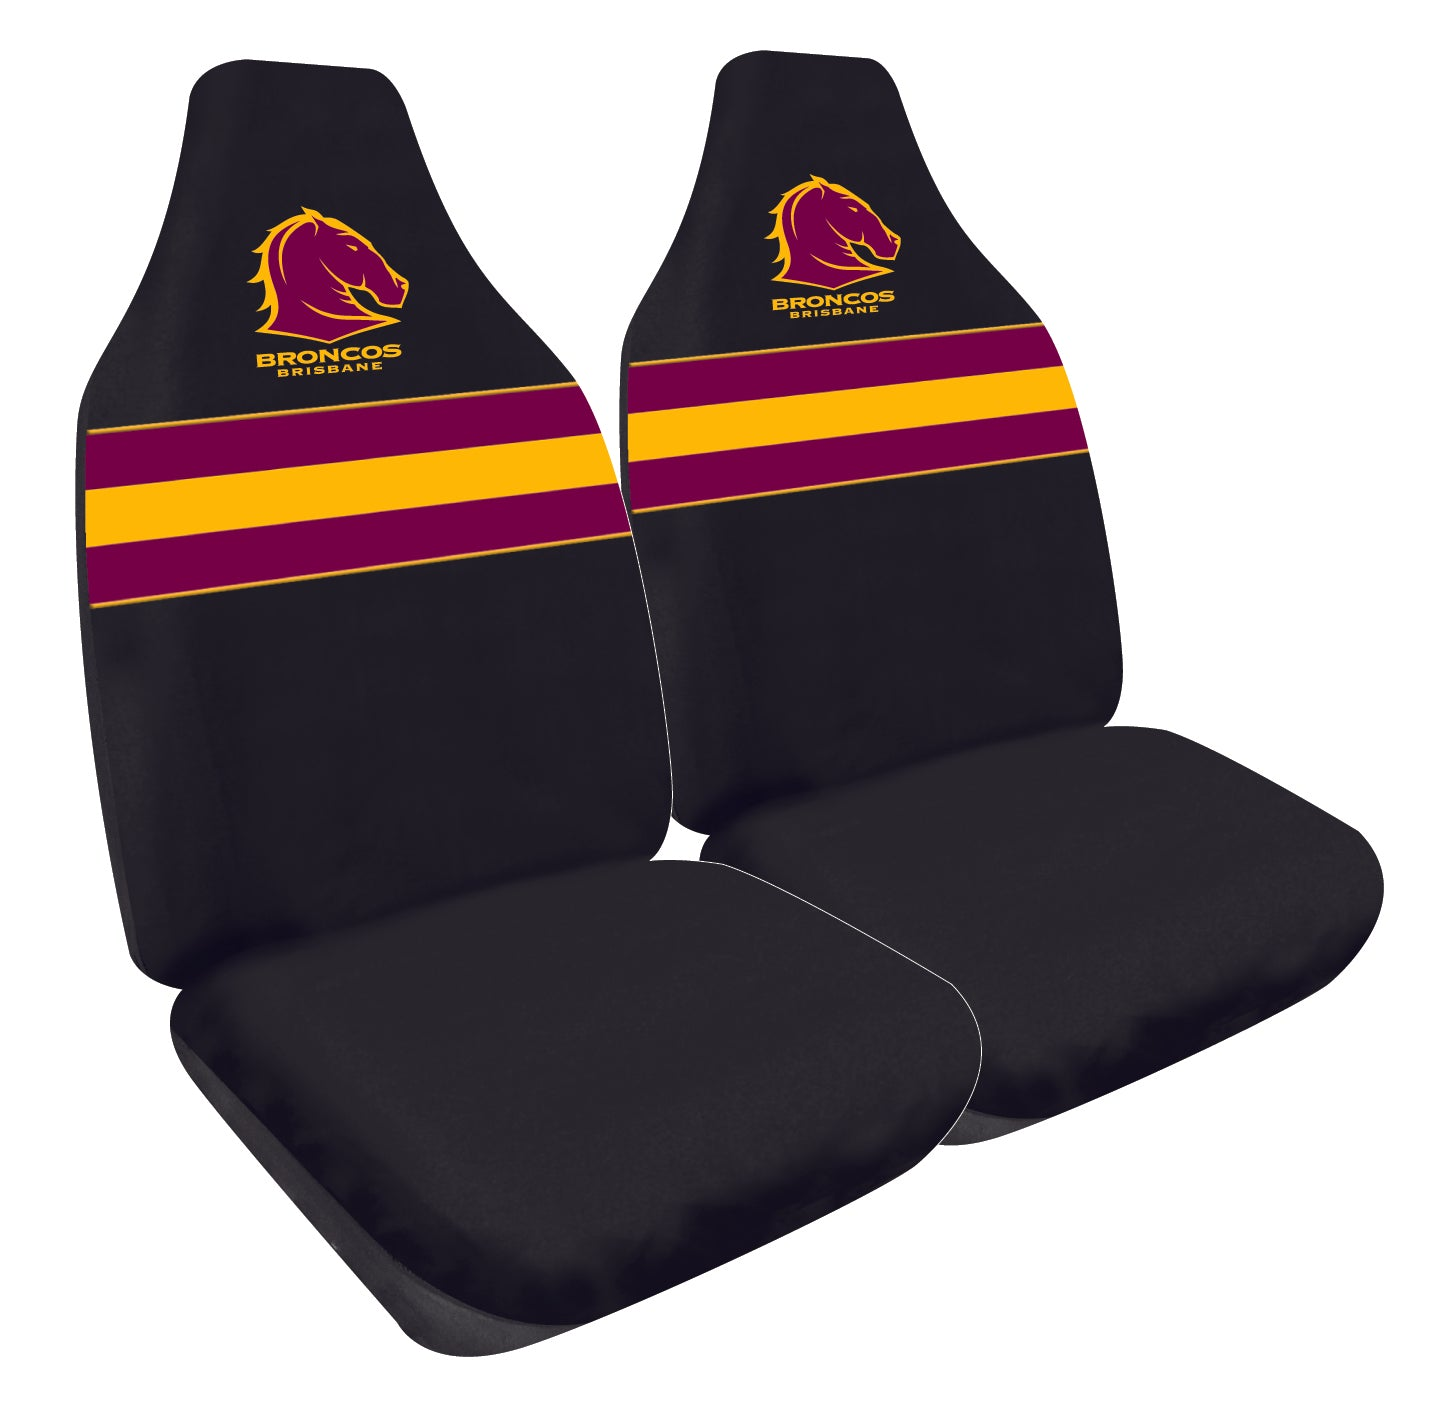 Brisbane Broncos Car Seat Covers